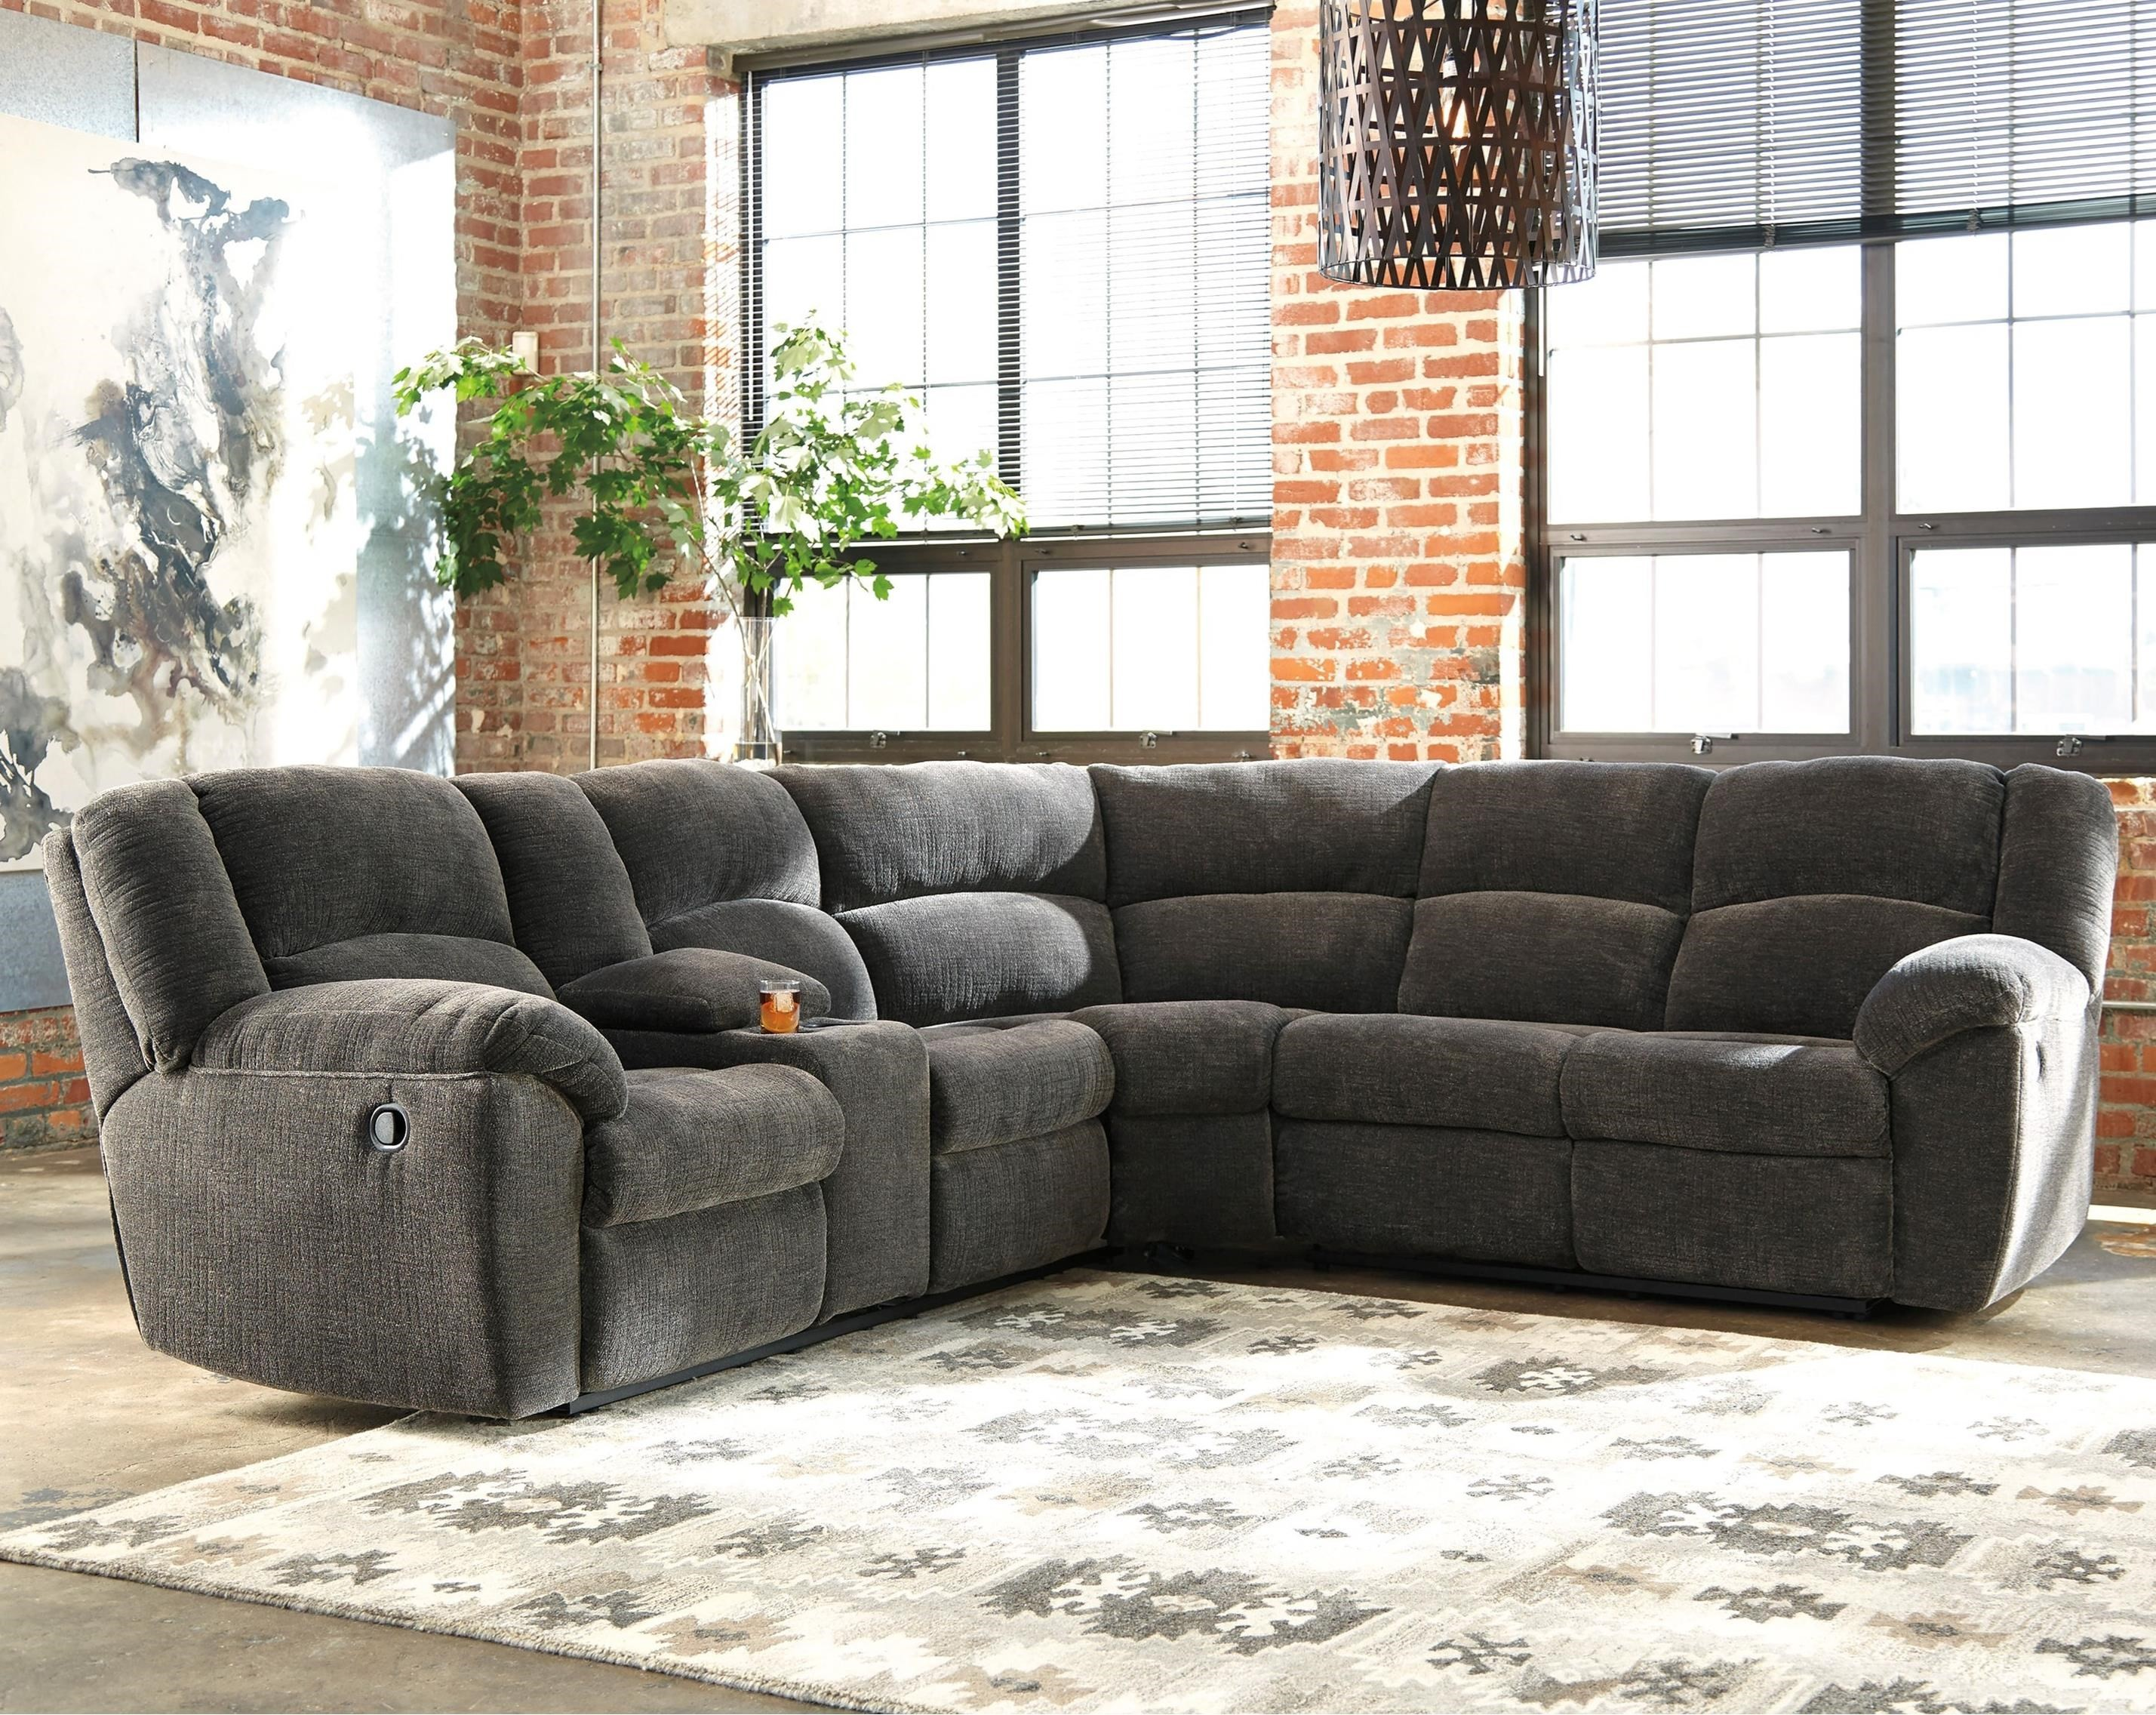 Reclining Sectional sofa Excellent Benchcraft Timpson Reclining Sectional with Storage Console Online